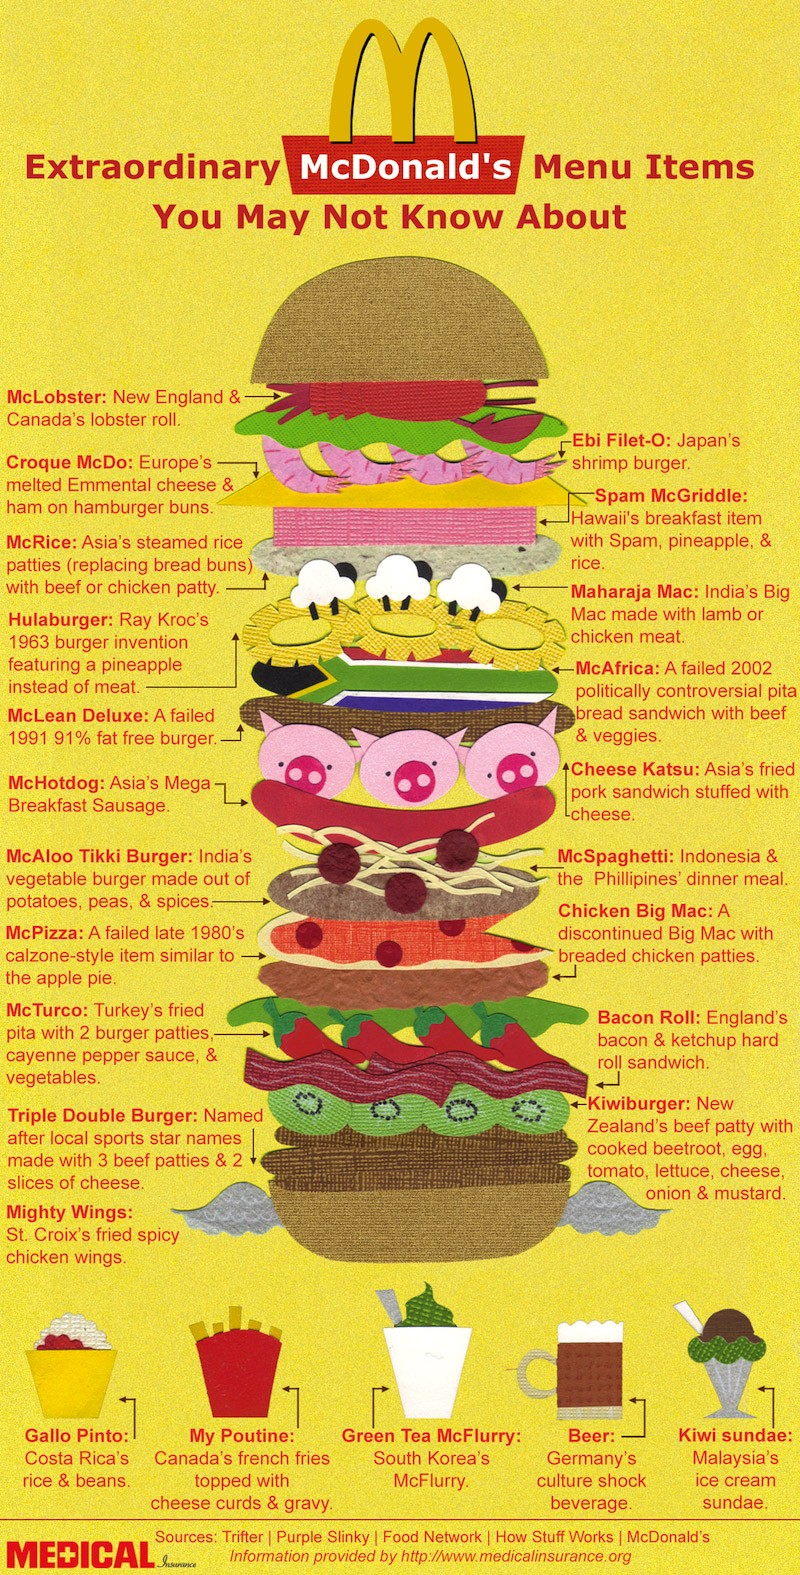 Extraordinary McDonald's Menu Items [Infographic]